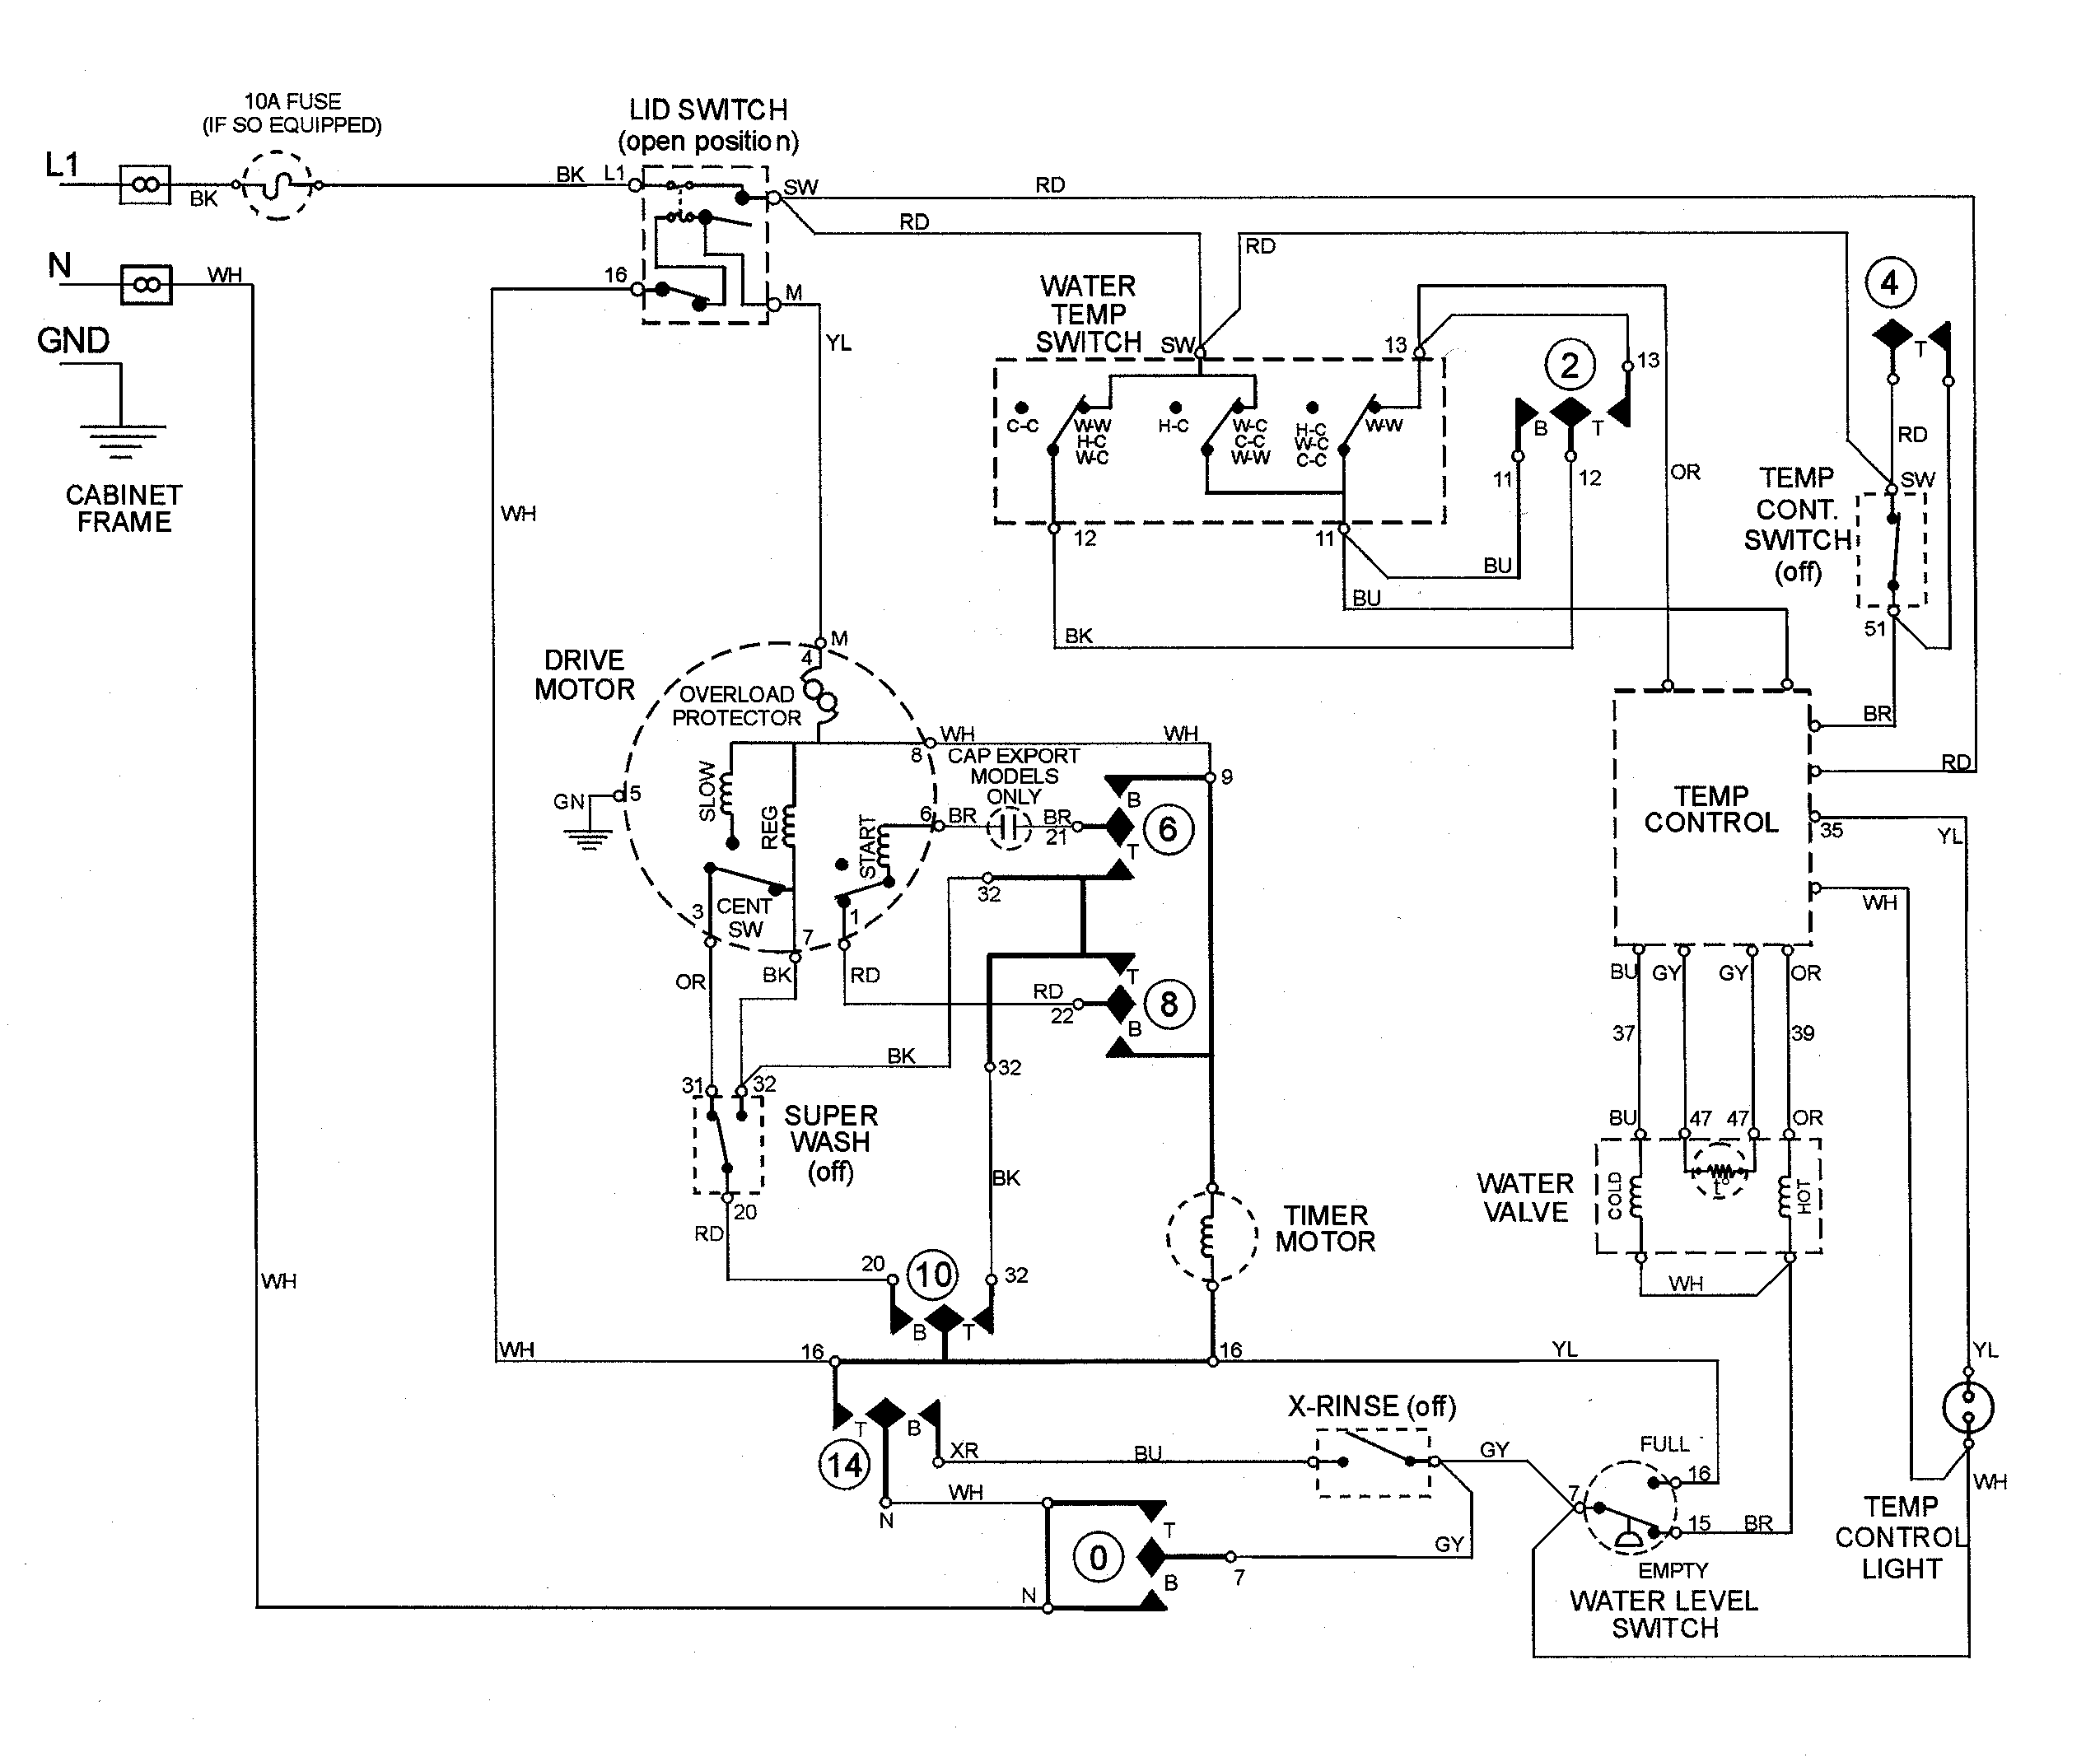 ge wiring diagrams wiring diagram images gallery 3 wire washing machine motor wiring diagram appliance wiring diagrams wiring diagrams